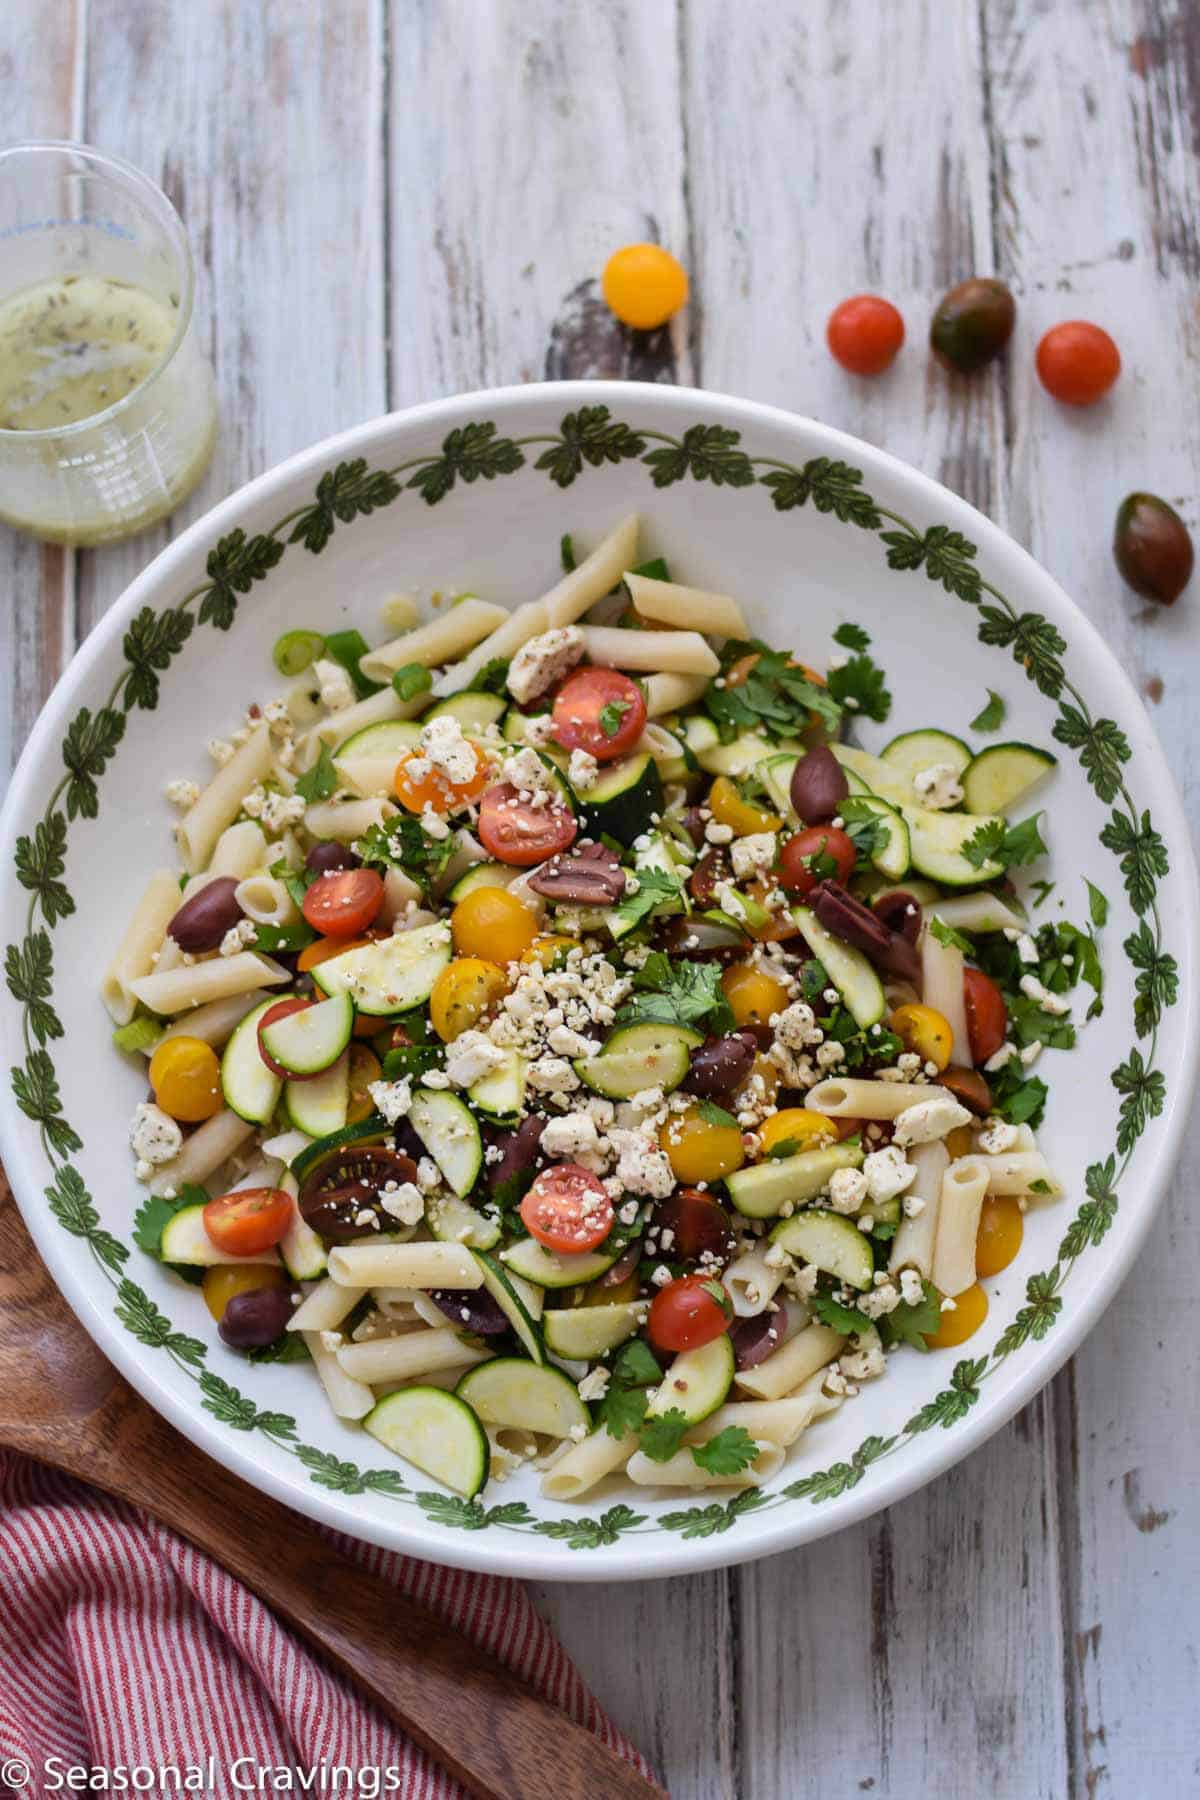 This Greek Pasta Salad will easily become your favorite summer salad. It's full of summer's seasonal bounty, healthy and gluten-free.